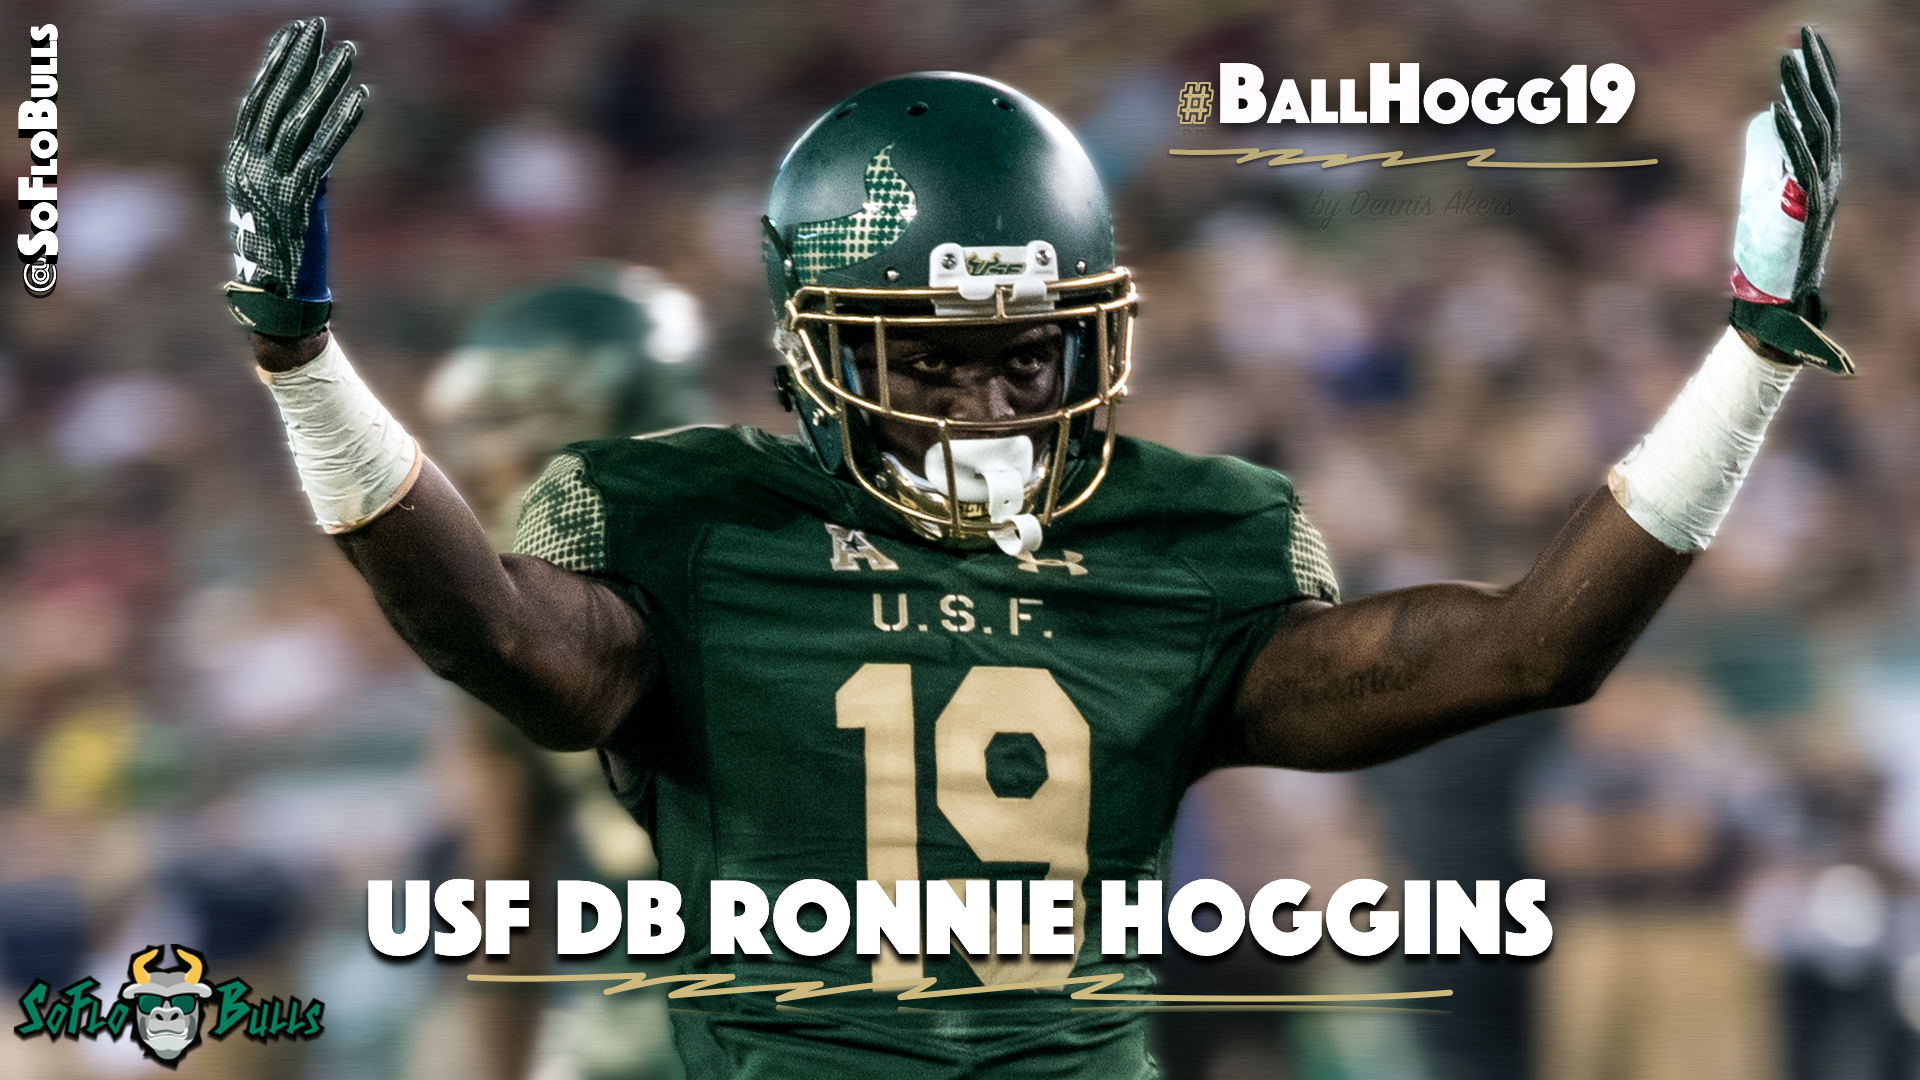 🎥 SoFloBulls.com 2016 USF Football Highlights Series: #BallHogg19 DB Ronnie Hoggins by Matthew Manuri